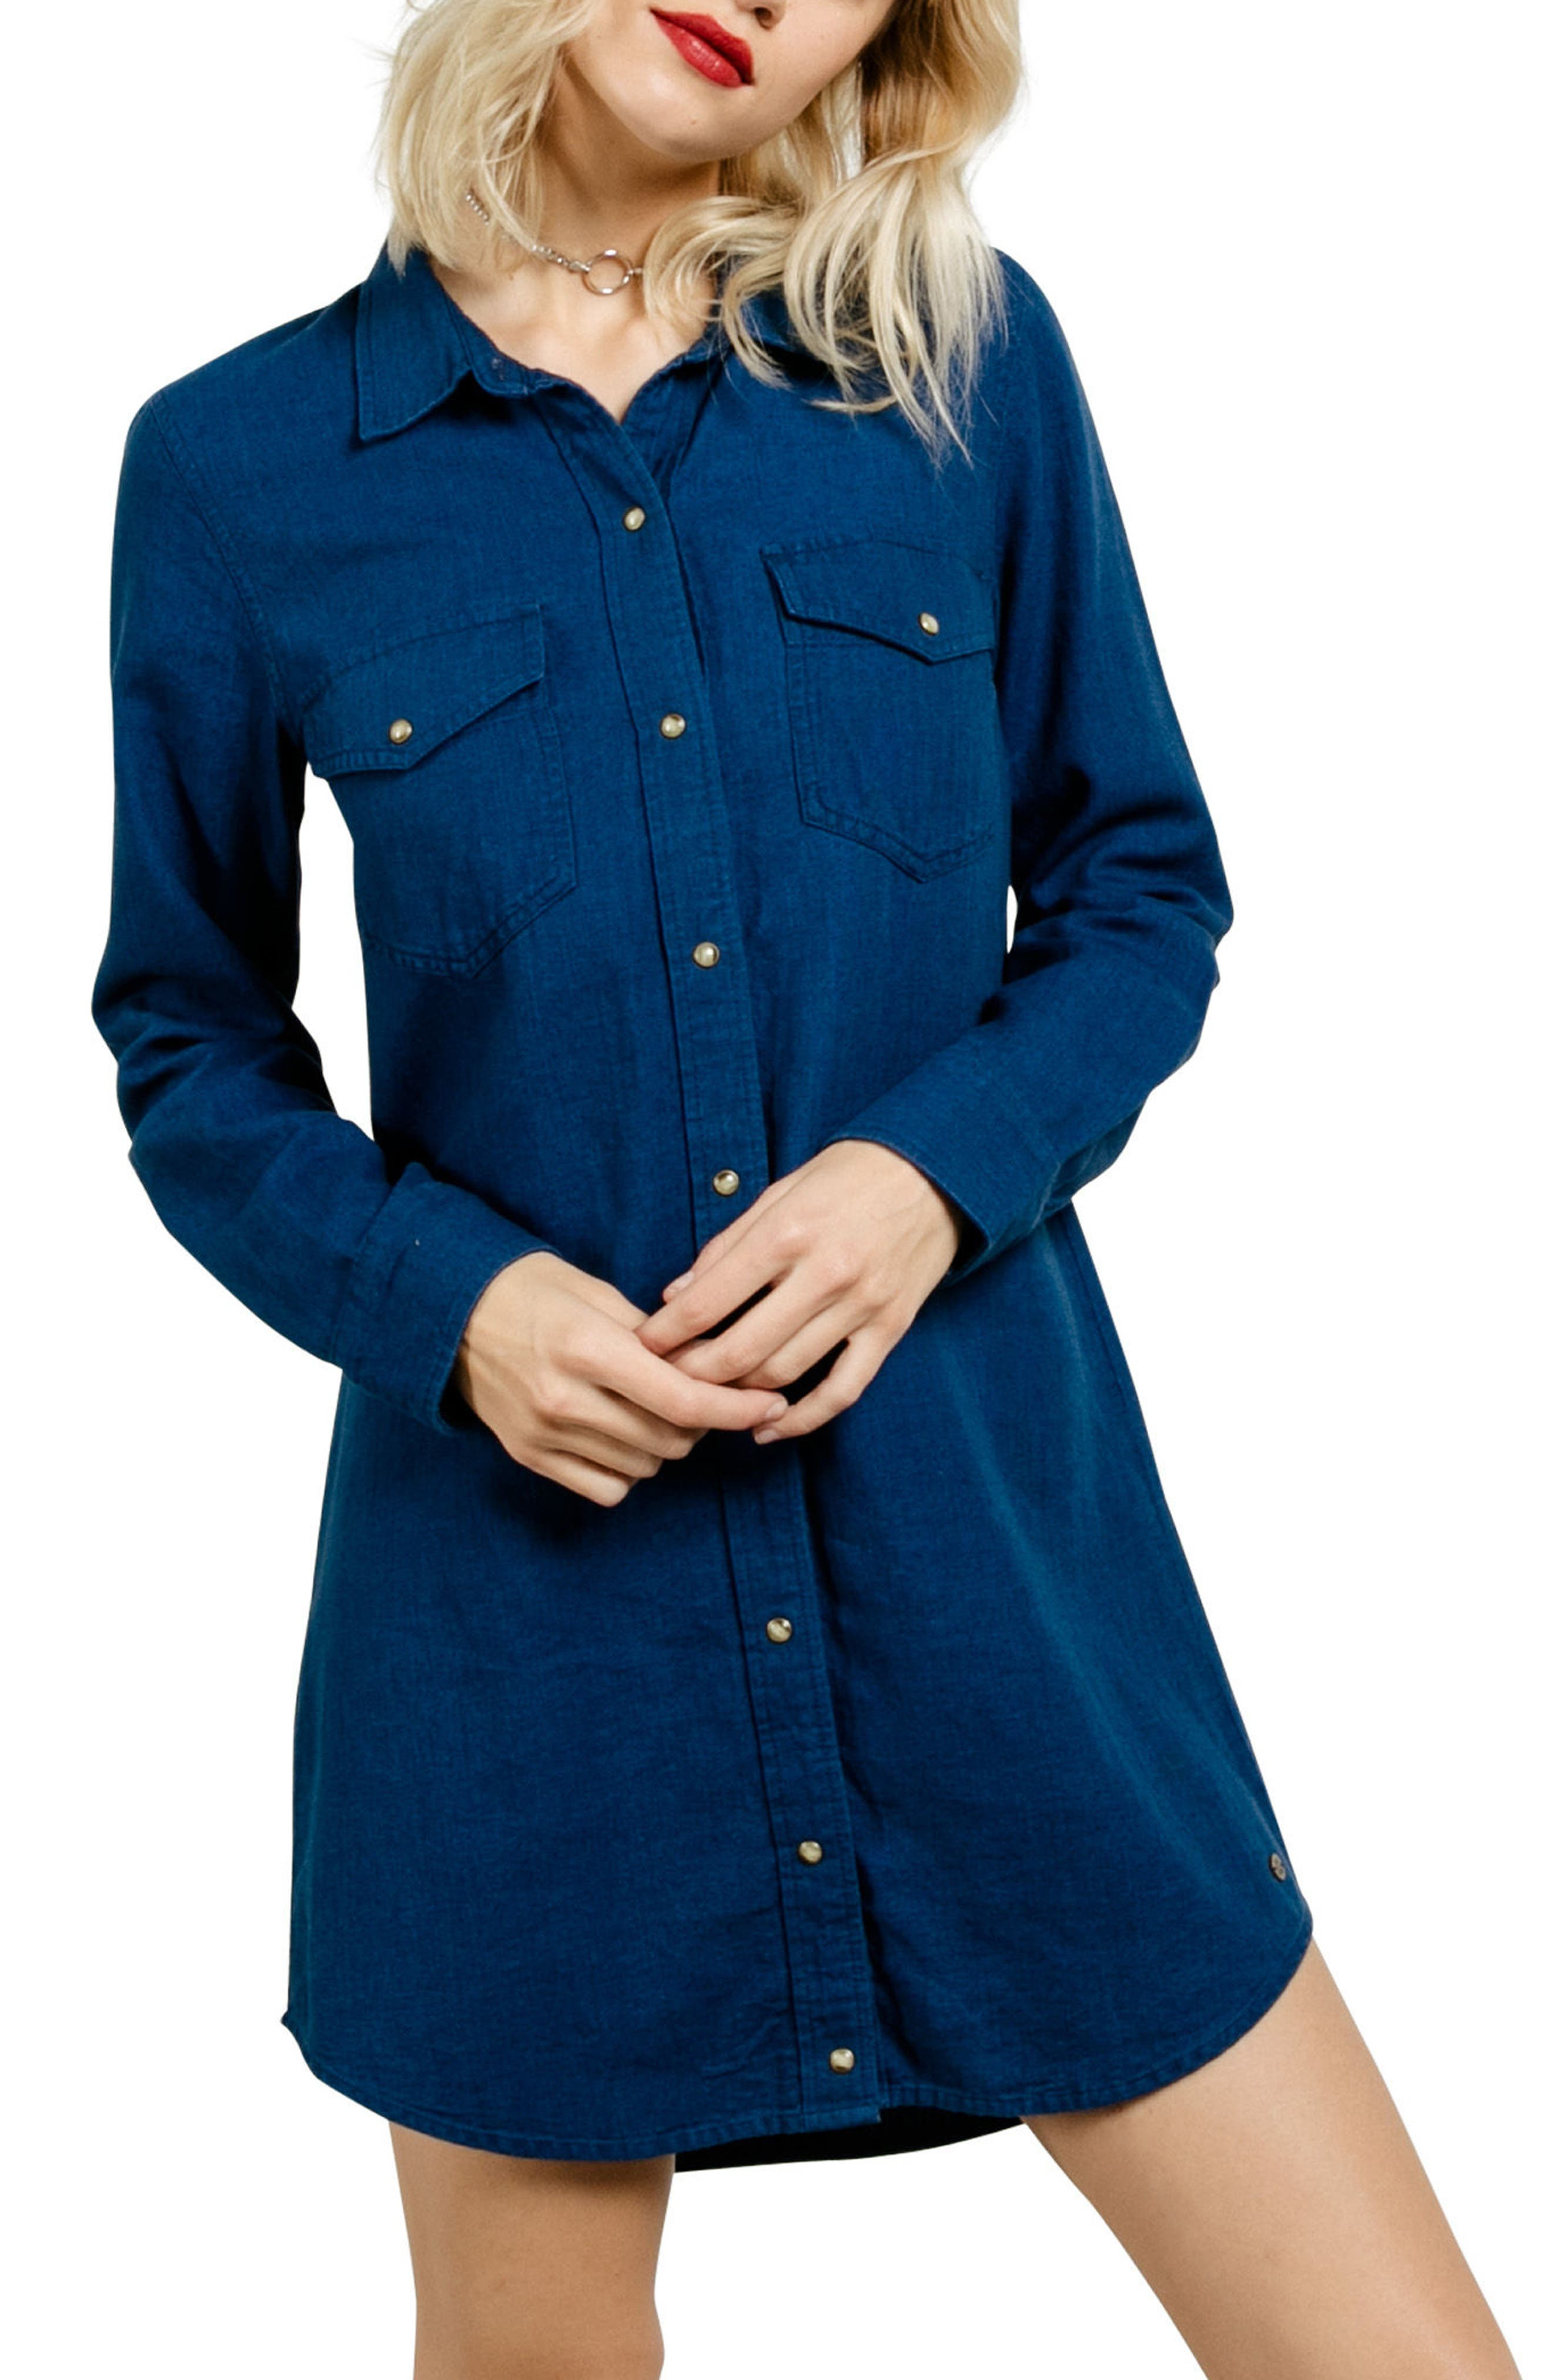 Cham Jam Chambray Shirtdress,                             Main thumbnail 1, color,                             Blue